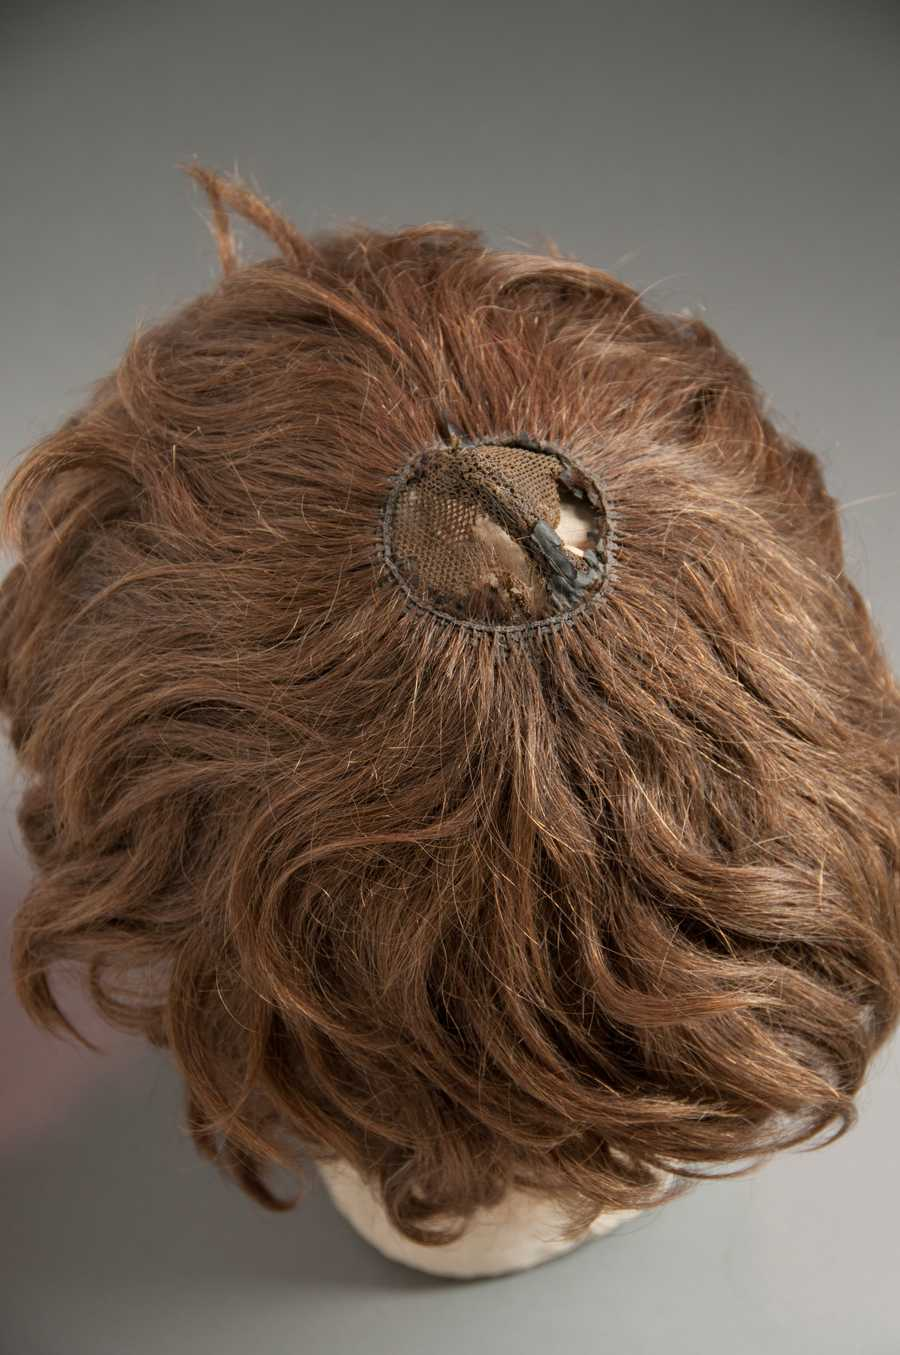 "Thaddeus Stevens wigInstitution: LancasterHistory.orgHometown: LancasterDescription: ""Wig worn by Congressman Thaddeus Stevens (1792-1868), passionate abolitionist, advocate for the 13th Amendment and recent subject of Steven Spielberg's 'Lincoln.'"""